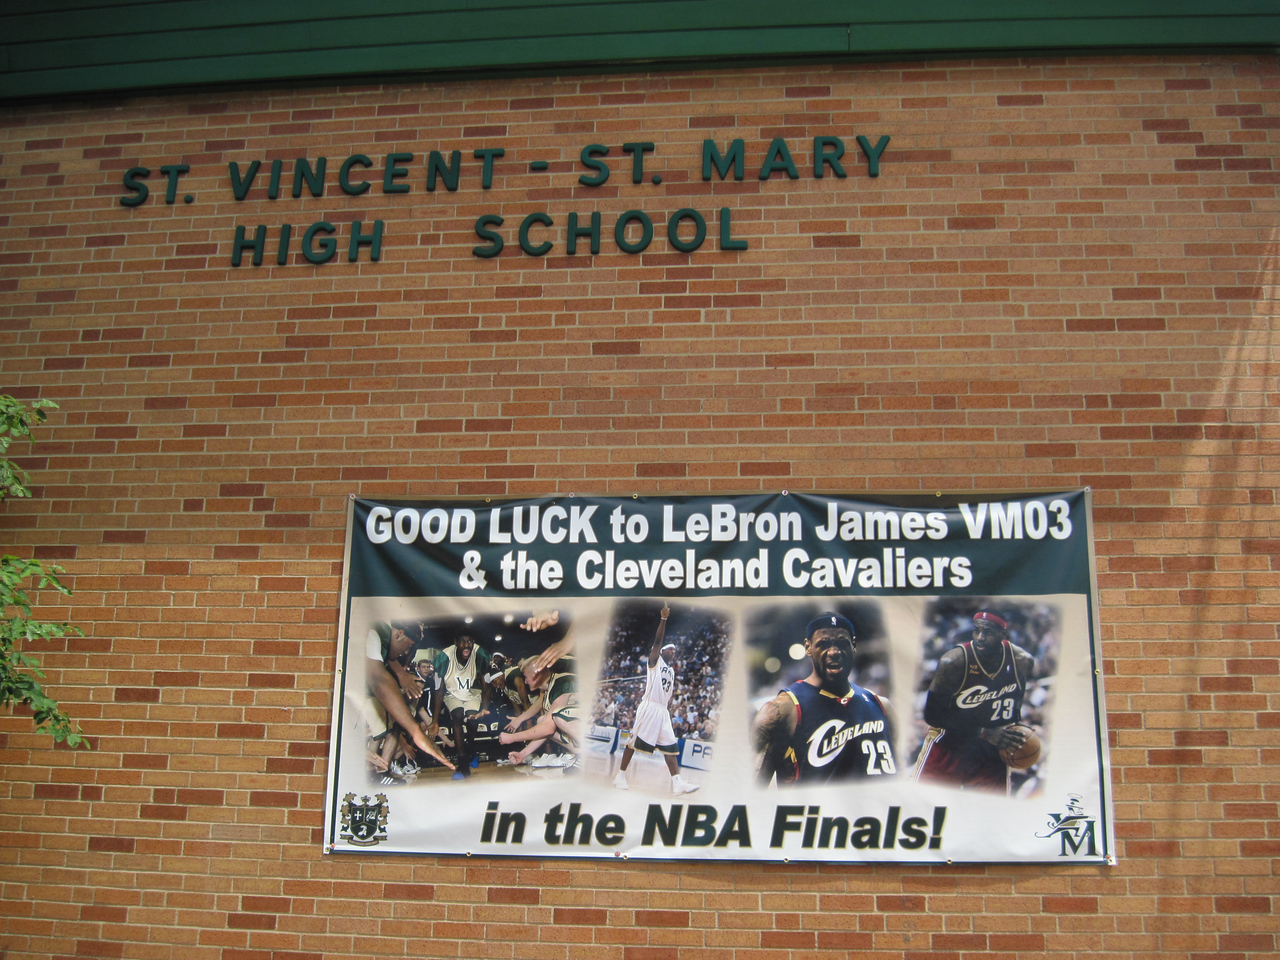 LAWRENCE PANTAGES / GAZETTE The alma mater of Cavaliers star LeBron James, St. Vincent-St. Mary High School in downtown Akron, adorned the front of its building with a banner showing support for James heading into Sunday's Game 7 of the NBA Finals.